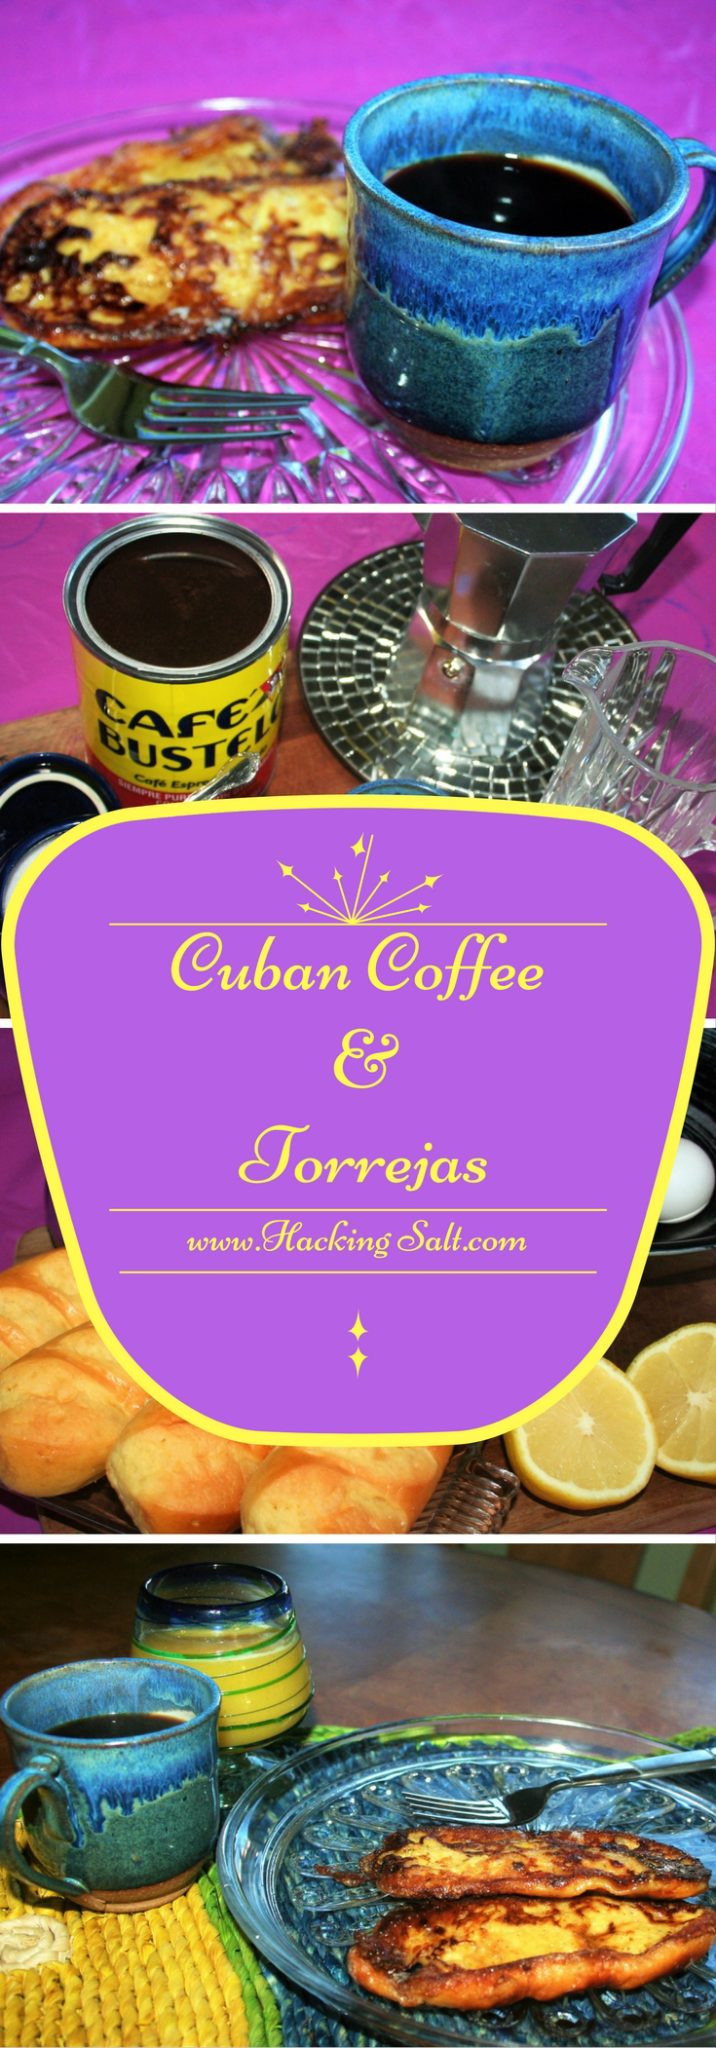 Cuban Coffee with Sweet Toast